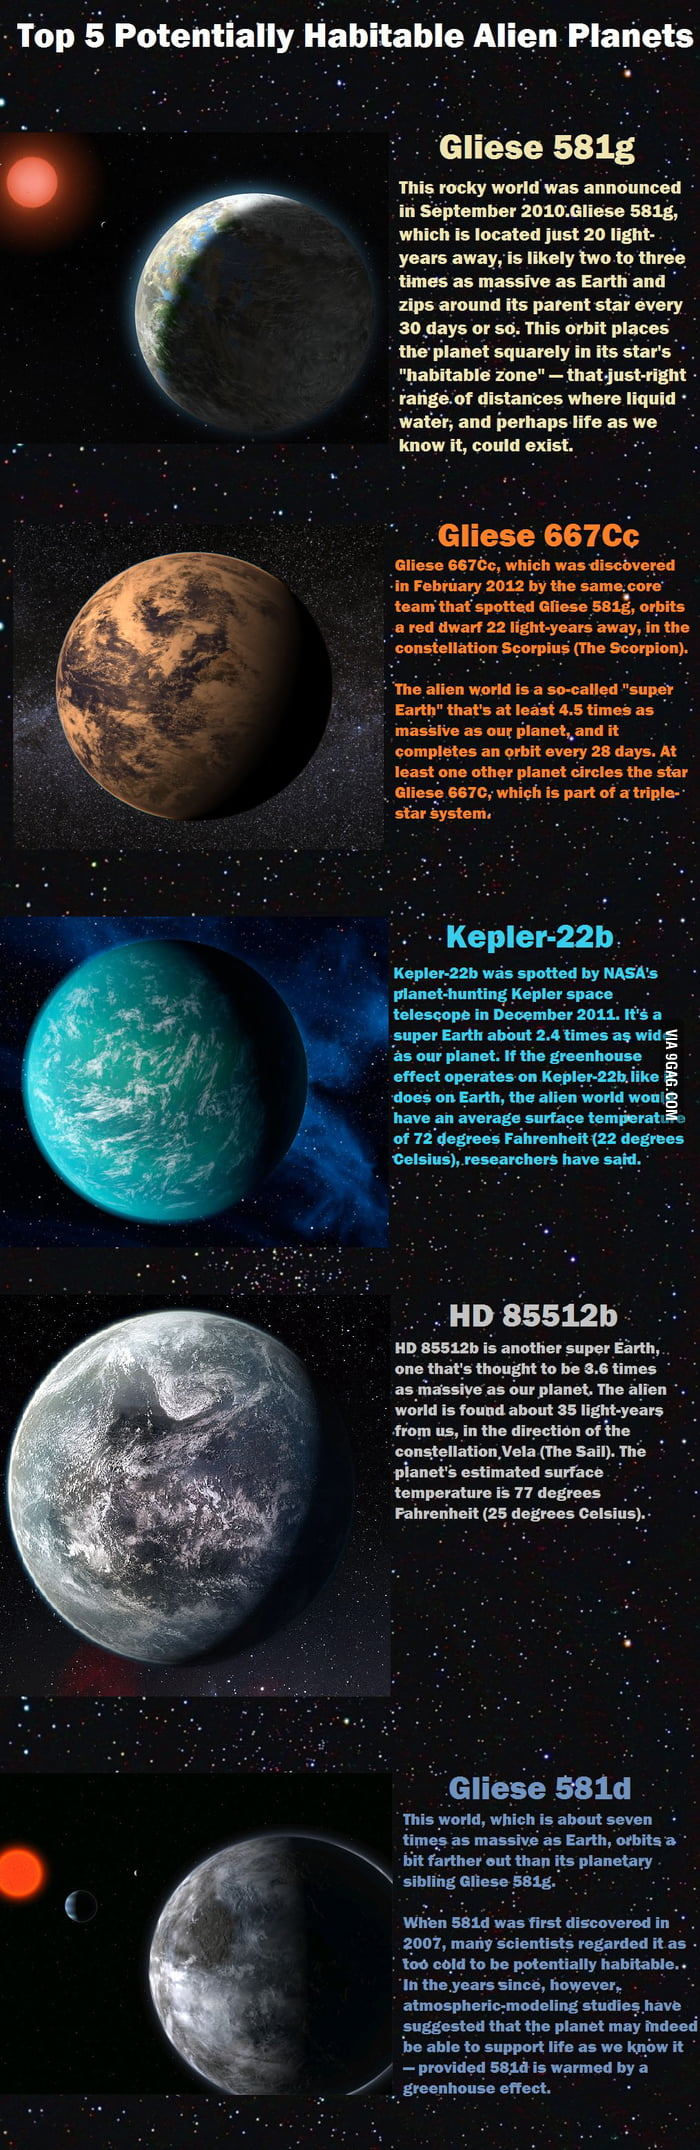 Top 5 Habitable Alien Planet